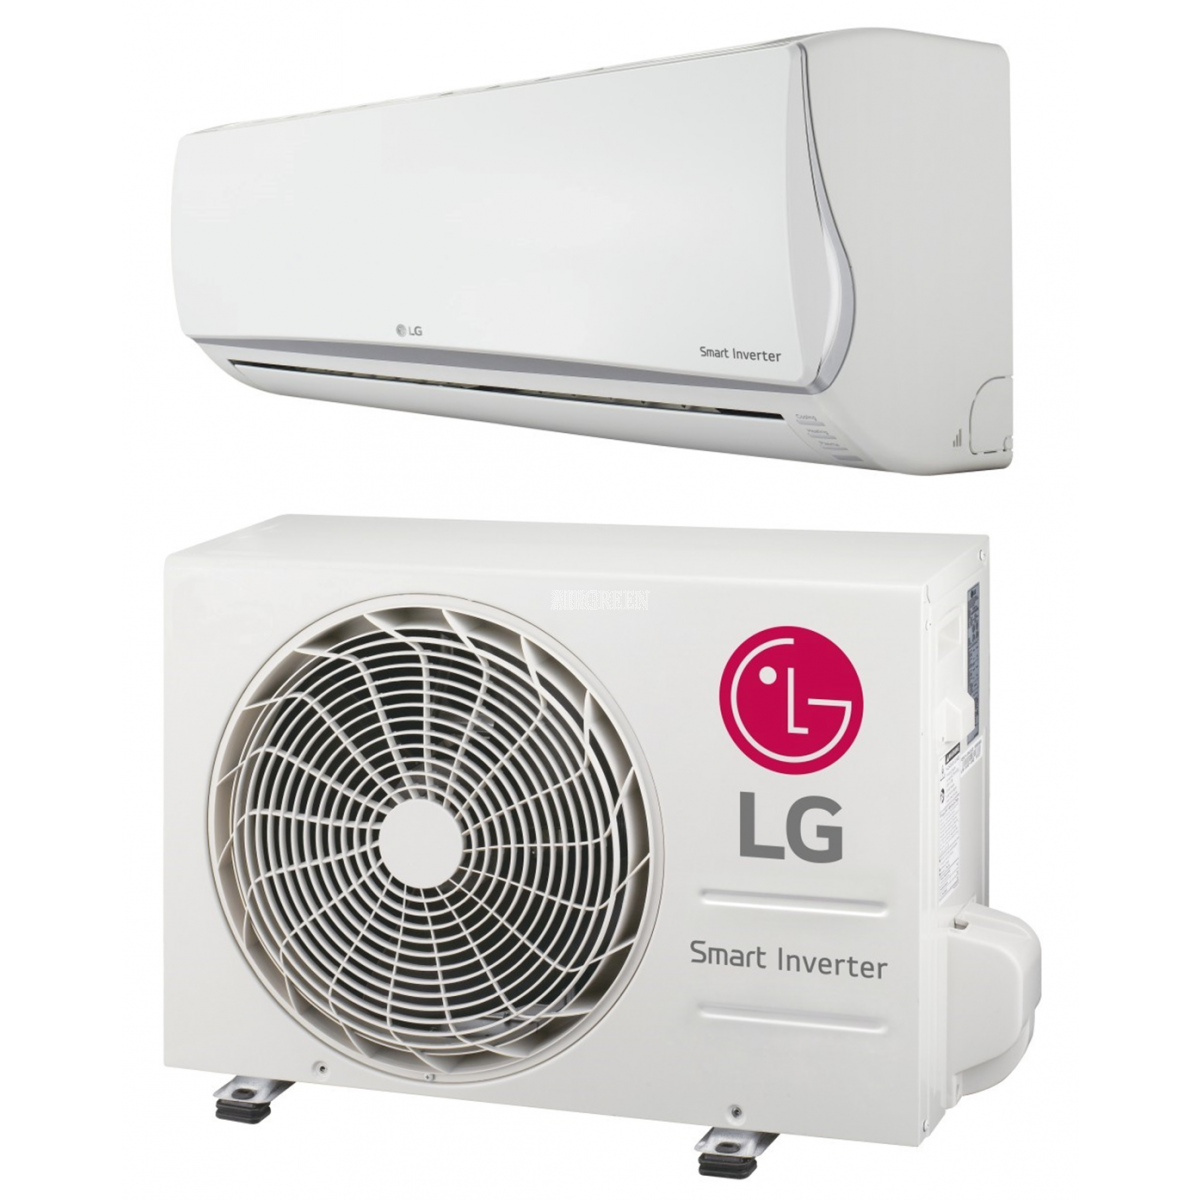 lg gloss white ductless heat pump from lg buy and install from the company airgreen. Black Bedroom Furniture Sets. Home Design Ideas